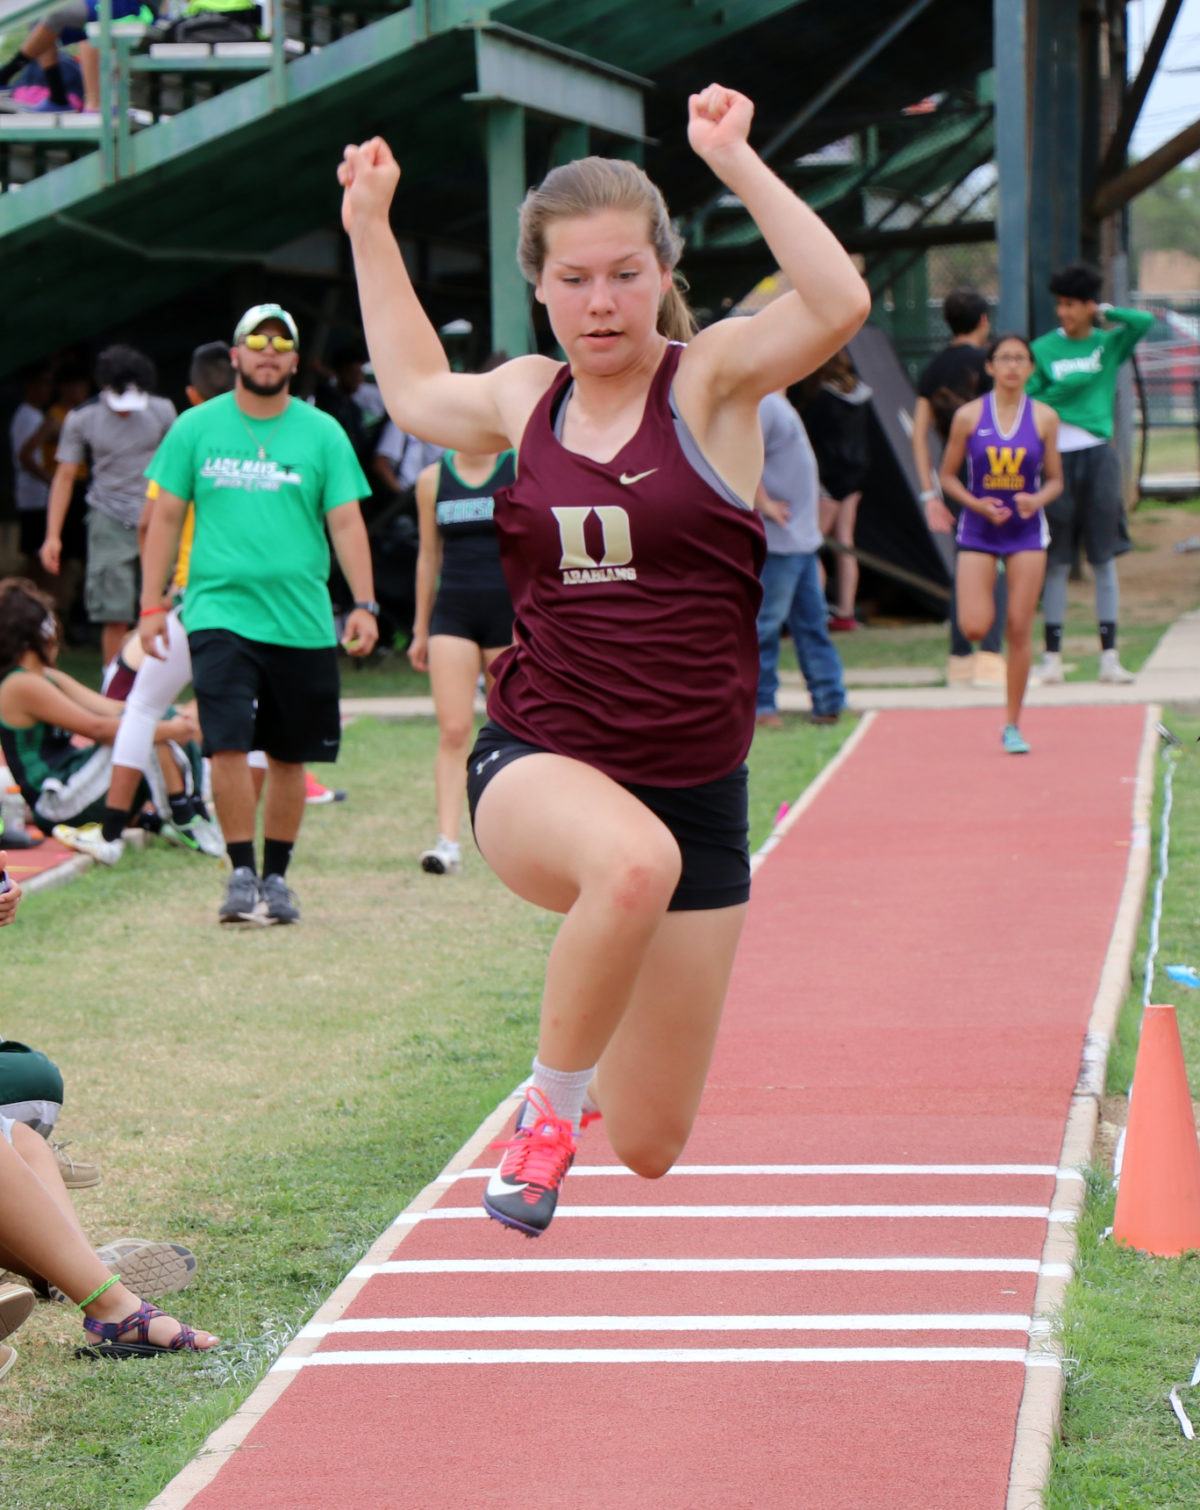 Arabian track clinches back-to-back championships